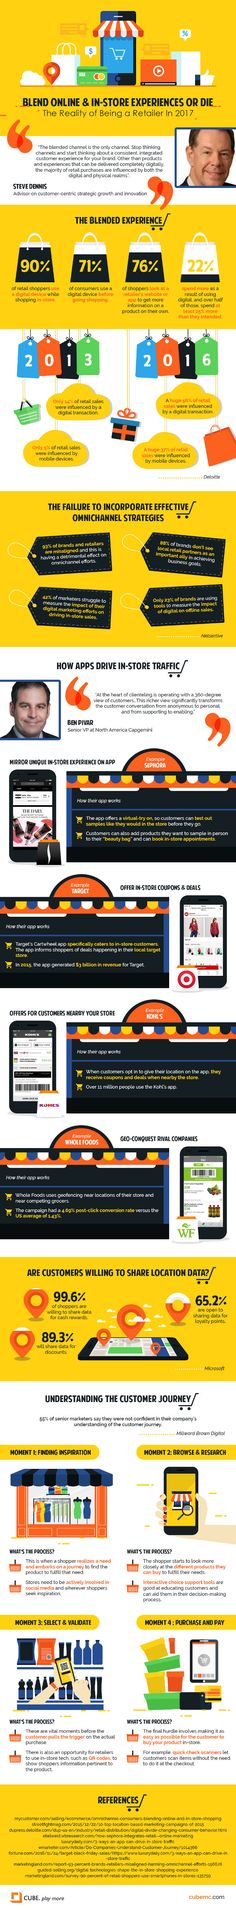 A Blended Online and In-Store Shopping Journey #Infographic #retail #B2C #strategy